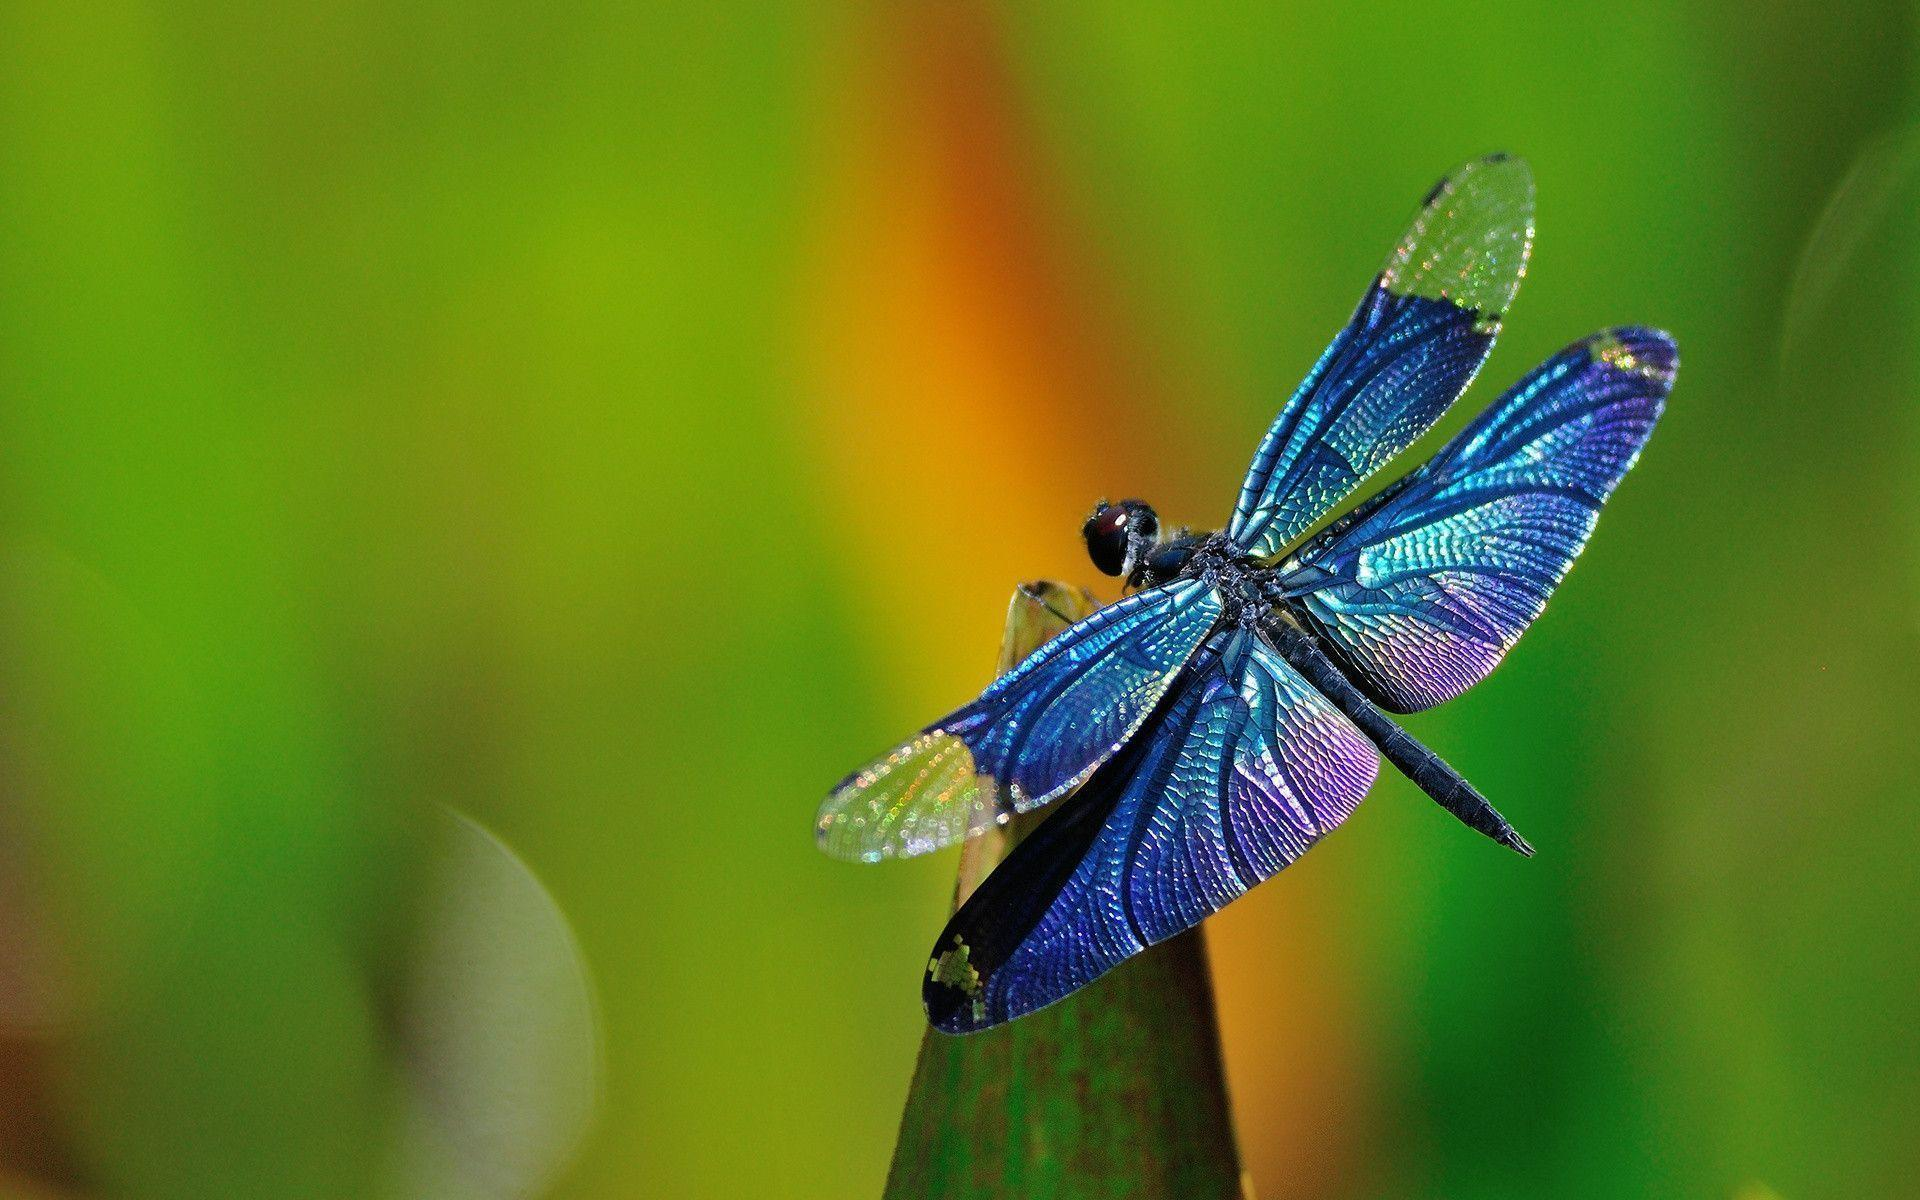 Free Wallpaper Nature Hd Free Dragonfly Wallpapers Wallpaper Cave